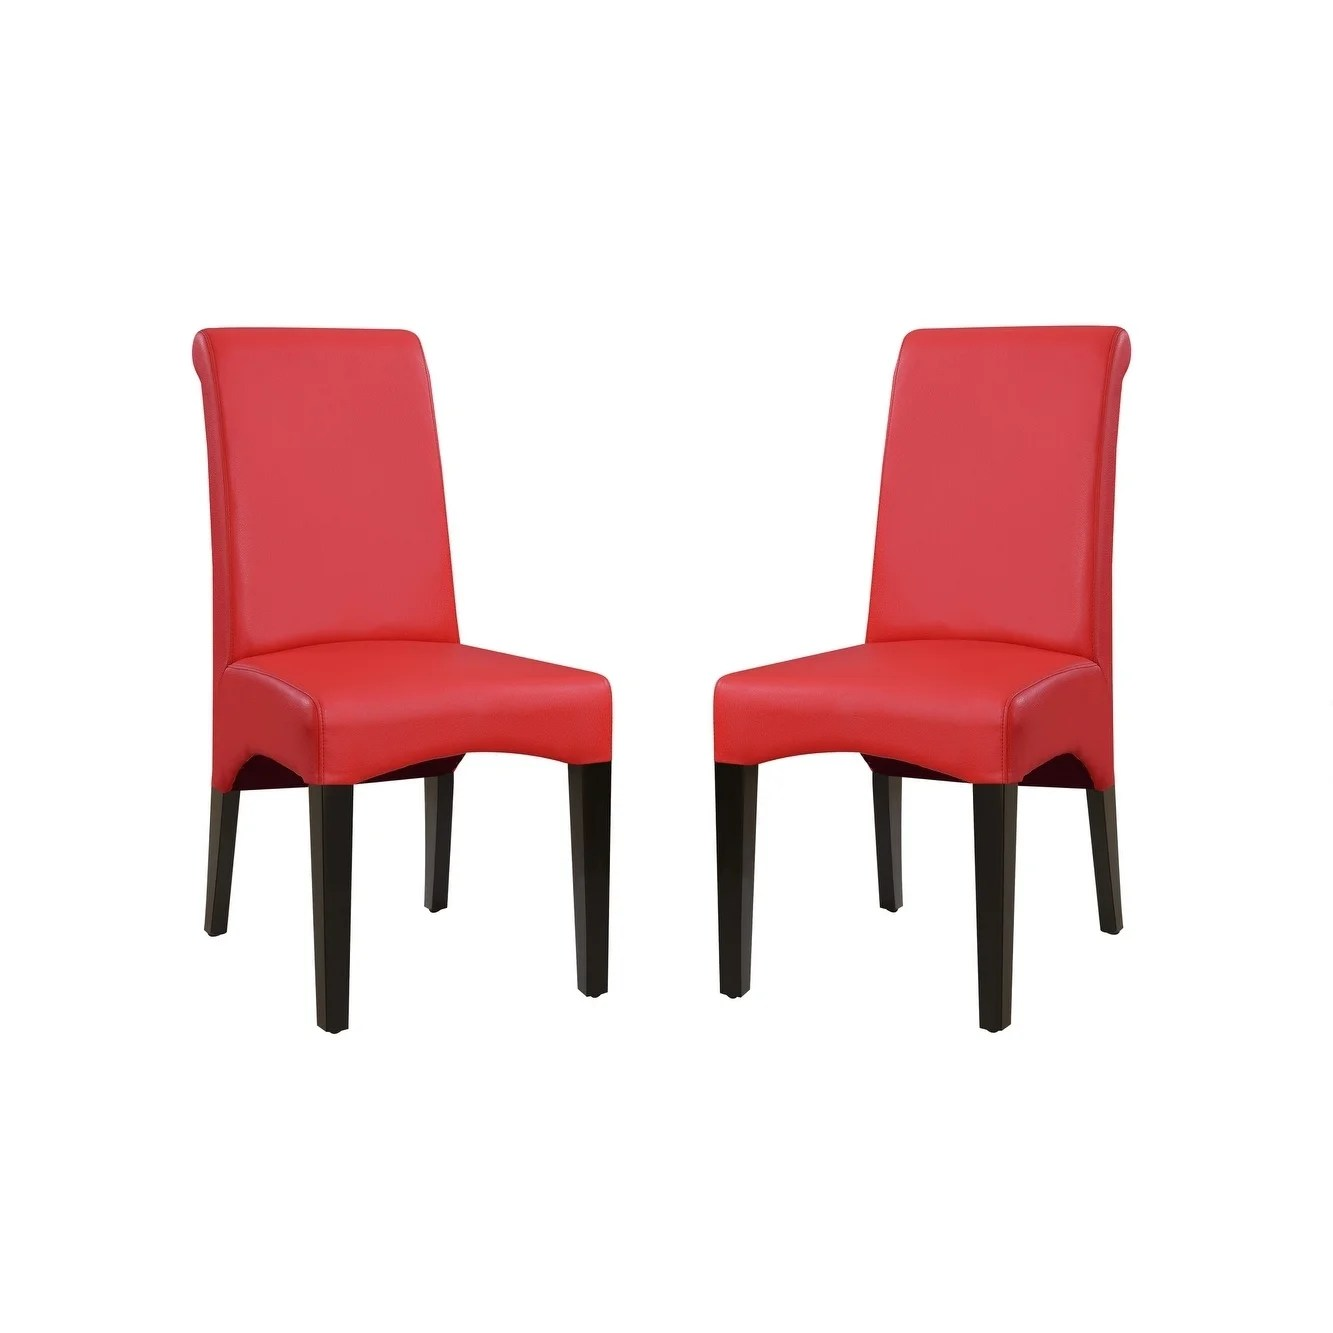 Red Upholstered Dining Chairs Emerald Home Briar Ii Traditional Red Upholstered Dining Chair Set Of 2